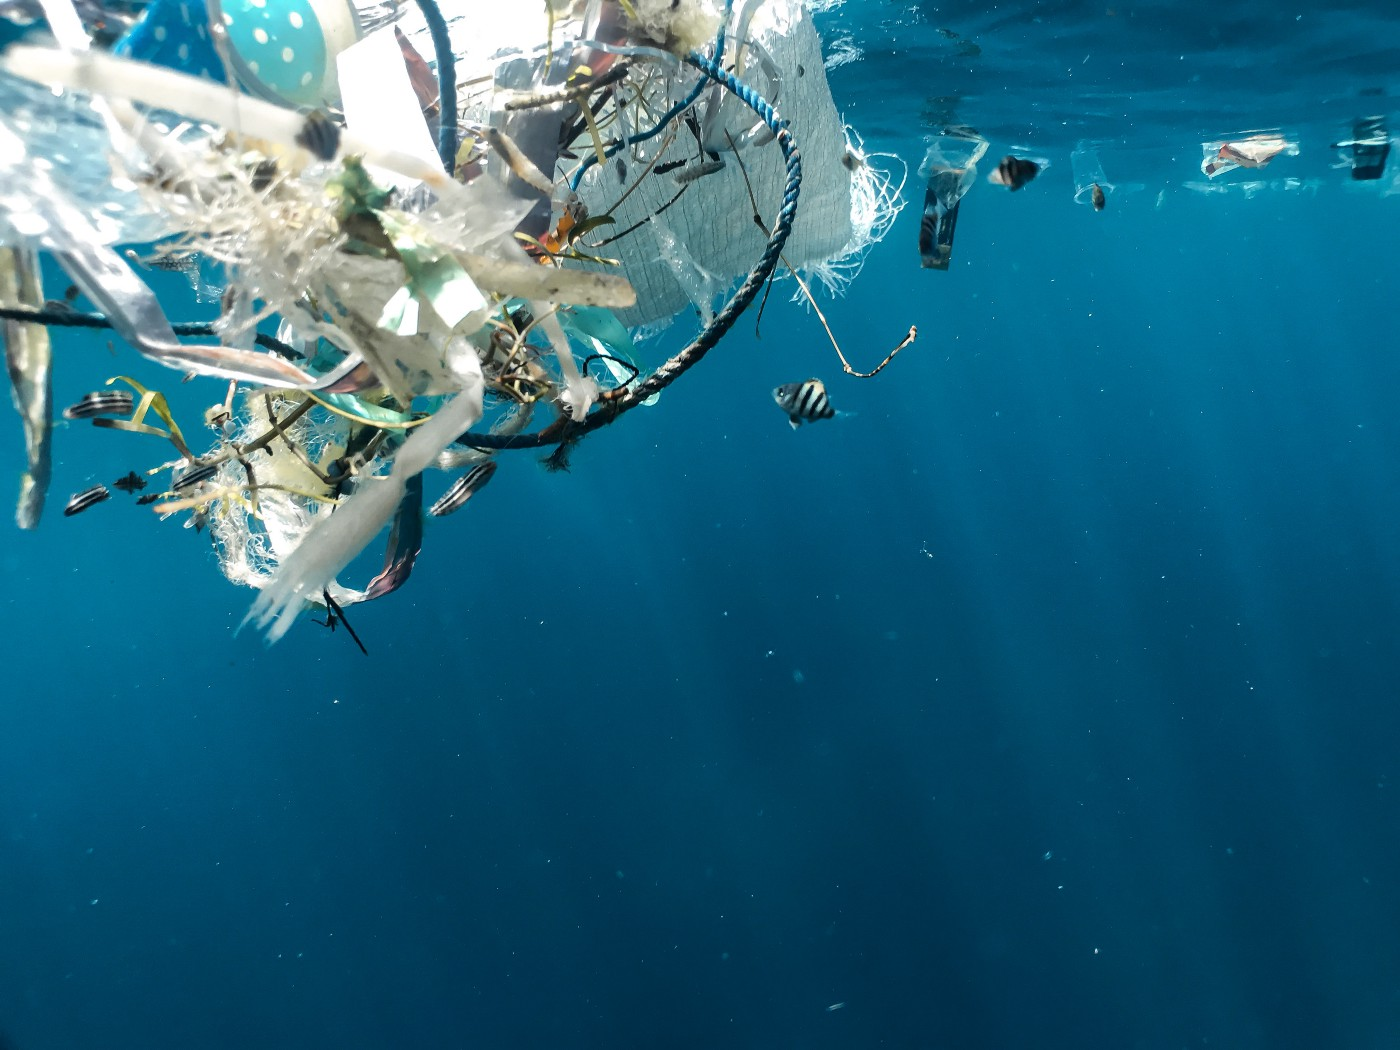 Underwater photo of a bunch of plastic waste floating.